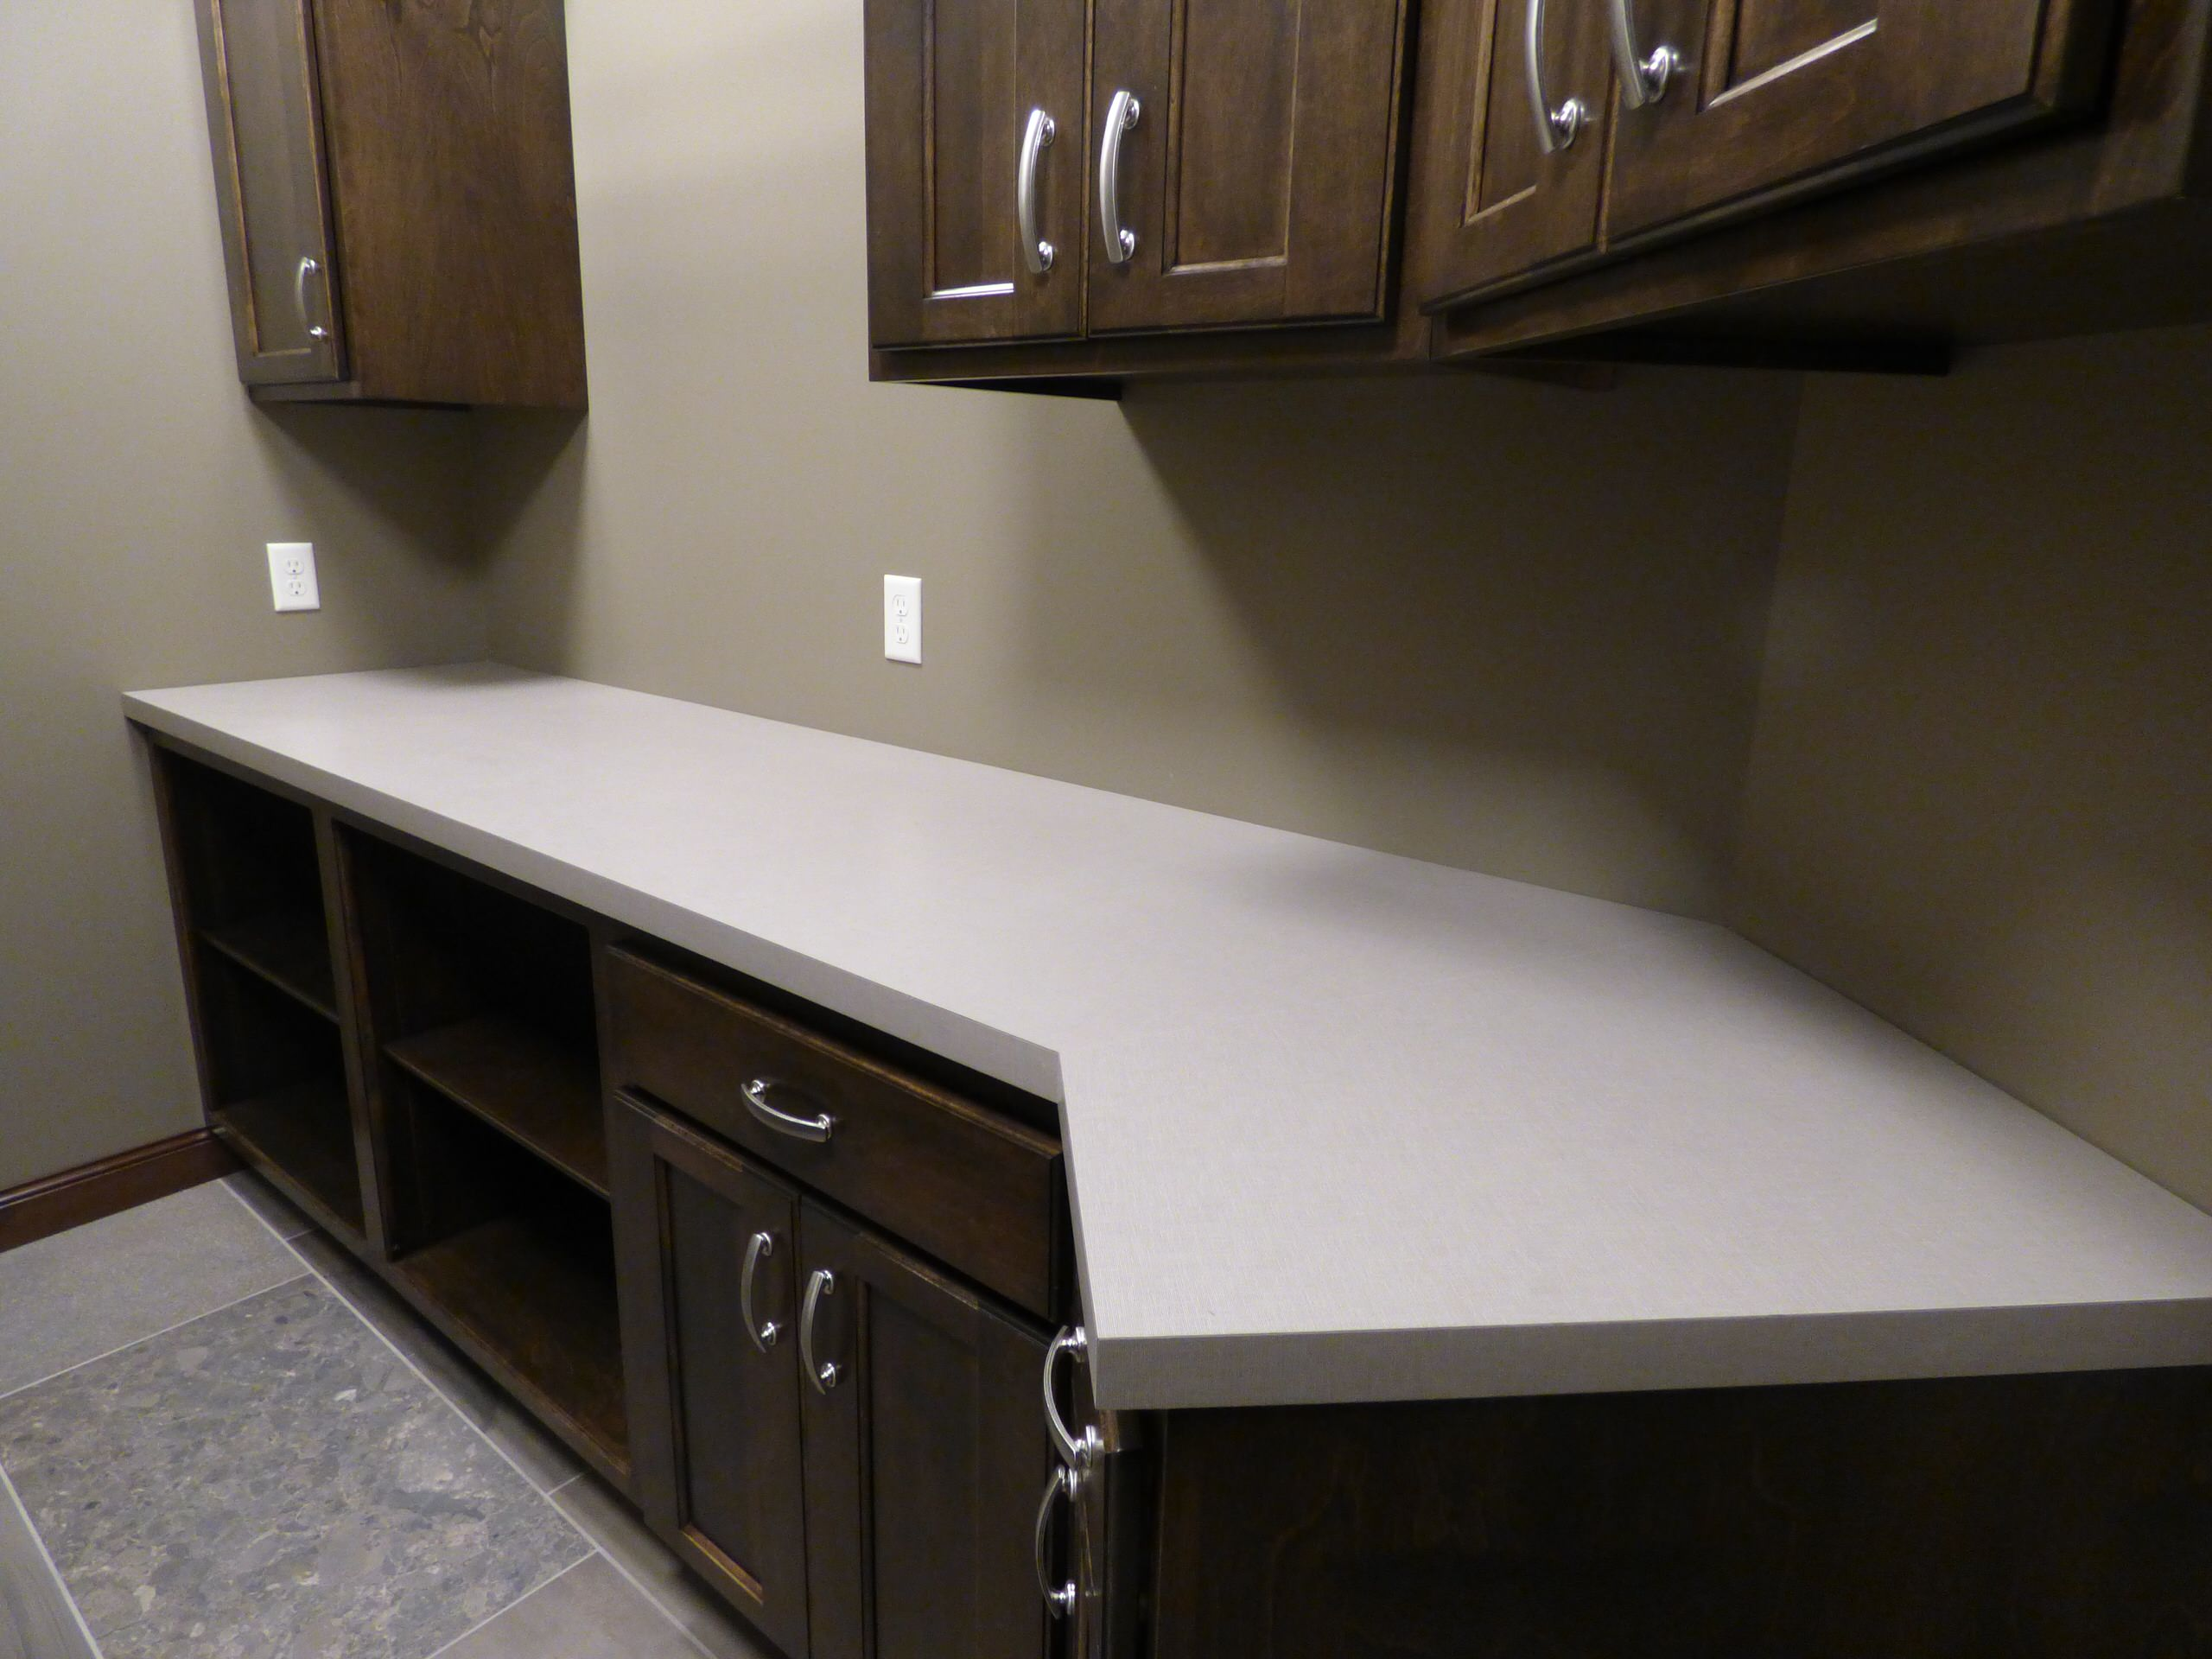 75 Beautiful Huge Laundry Room With Laminate Countertops Pictures Ideas January 2021 Houzz